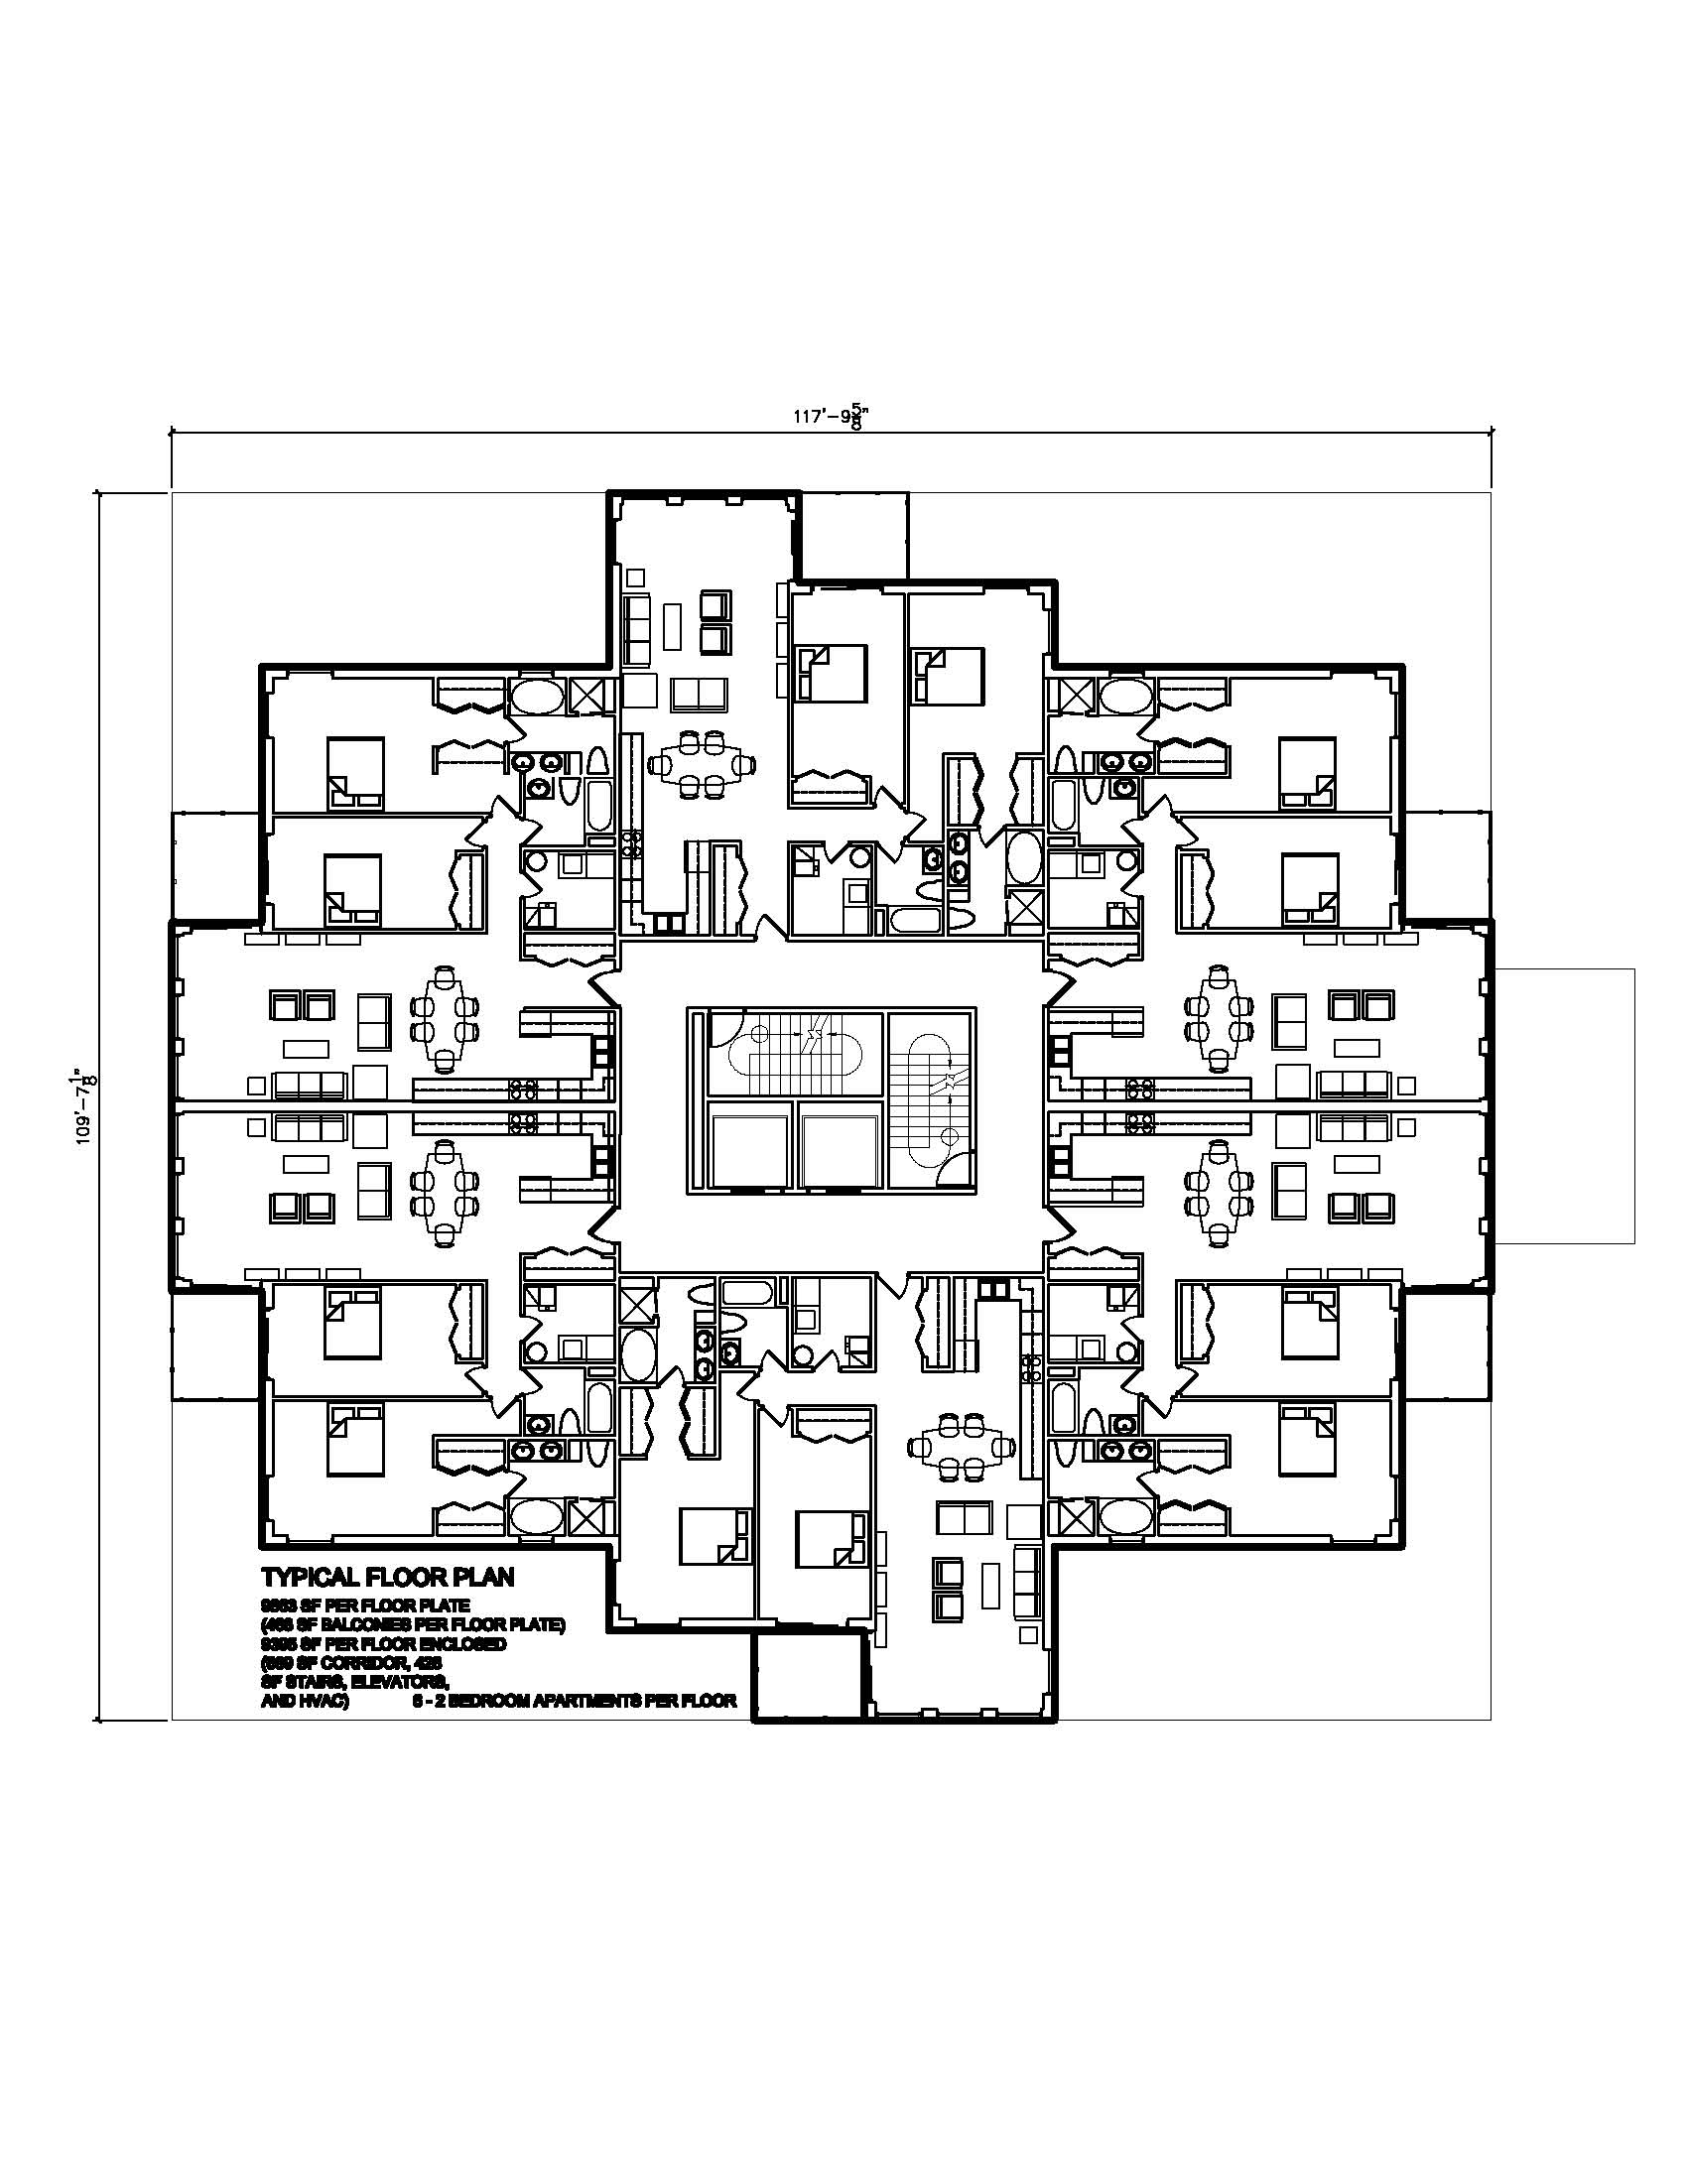 Hire Local Architects To Design And Construct The Buildings on office design floor plan